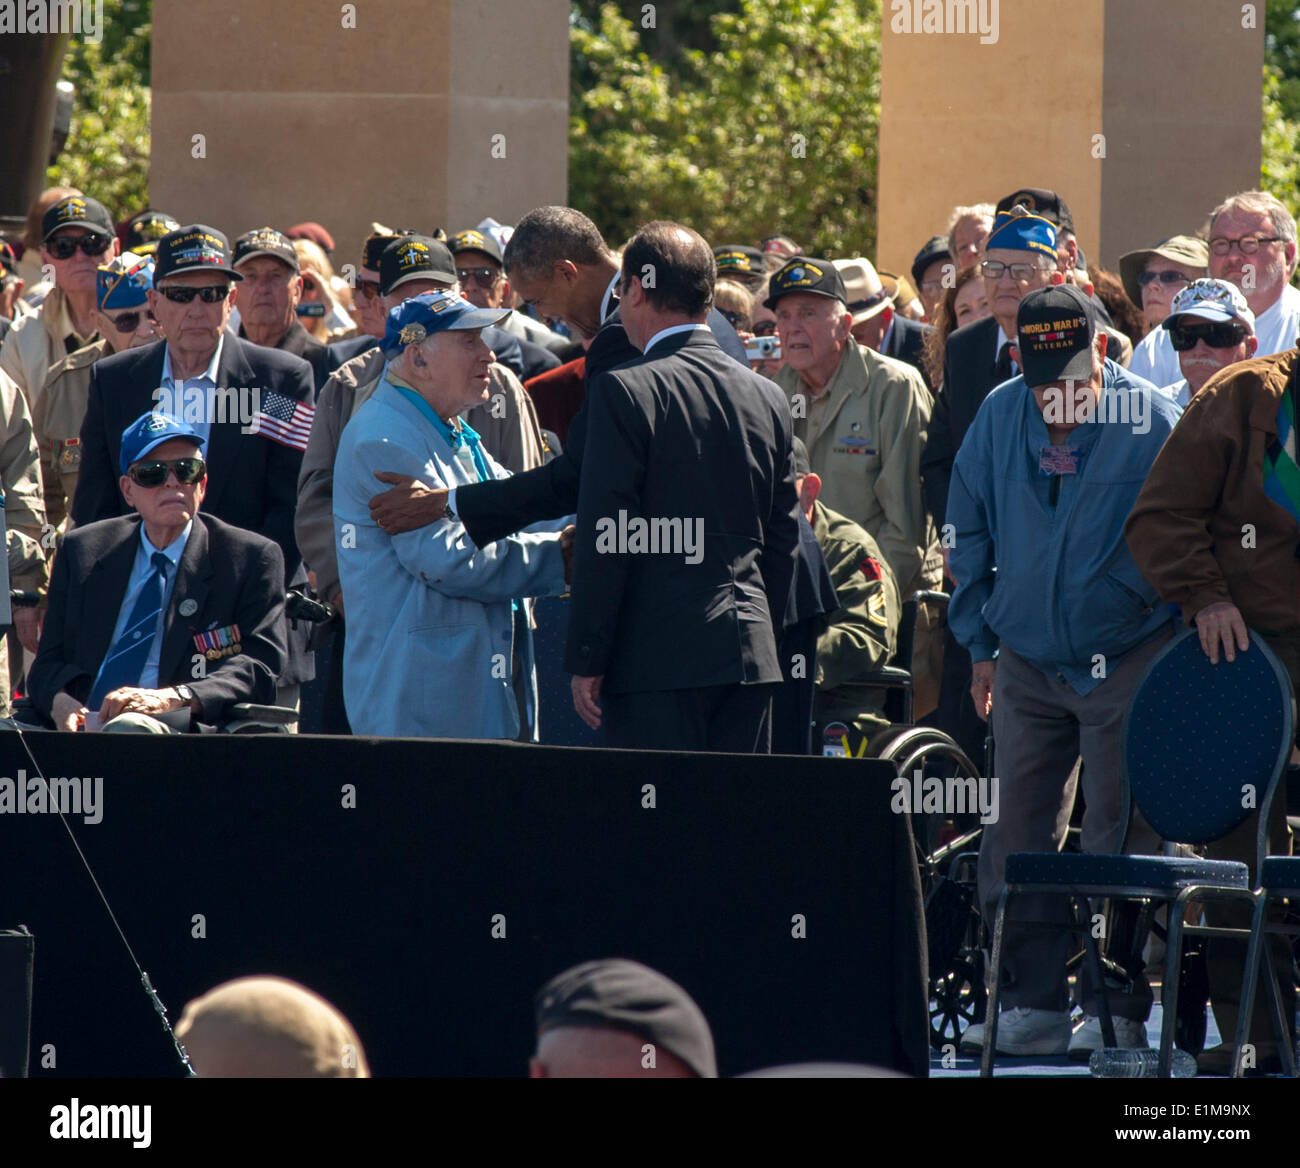 Colleville, Normandy, France. U.S. President Obama and French President François Hollande Greeting WWII Veterans at 6th June, D-Day 70th Anniversary Ceremonies visiting 'World War II'  Cemetery - Stock Image